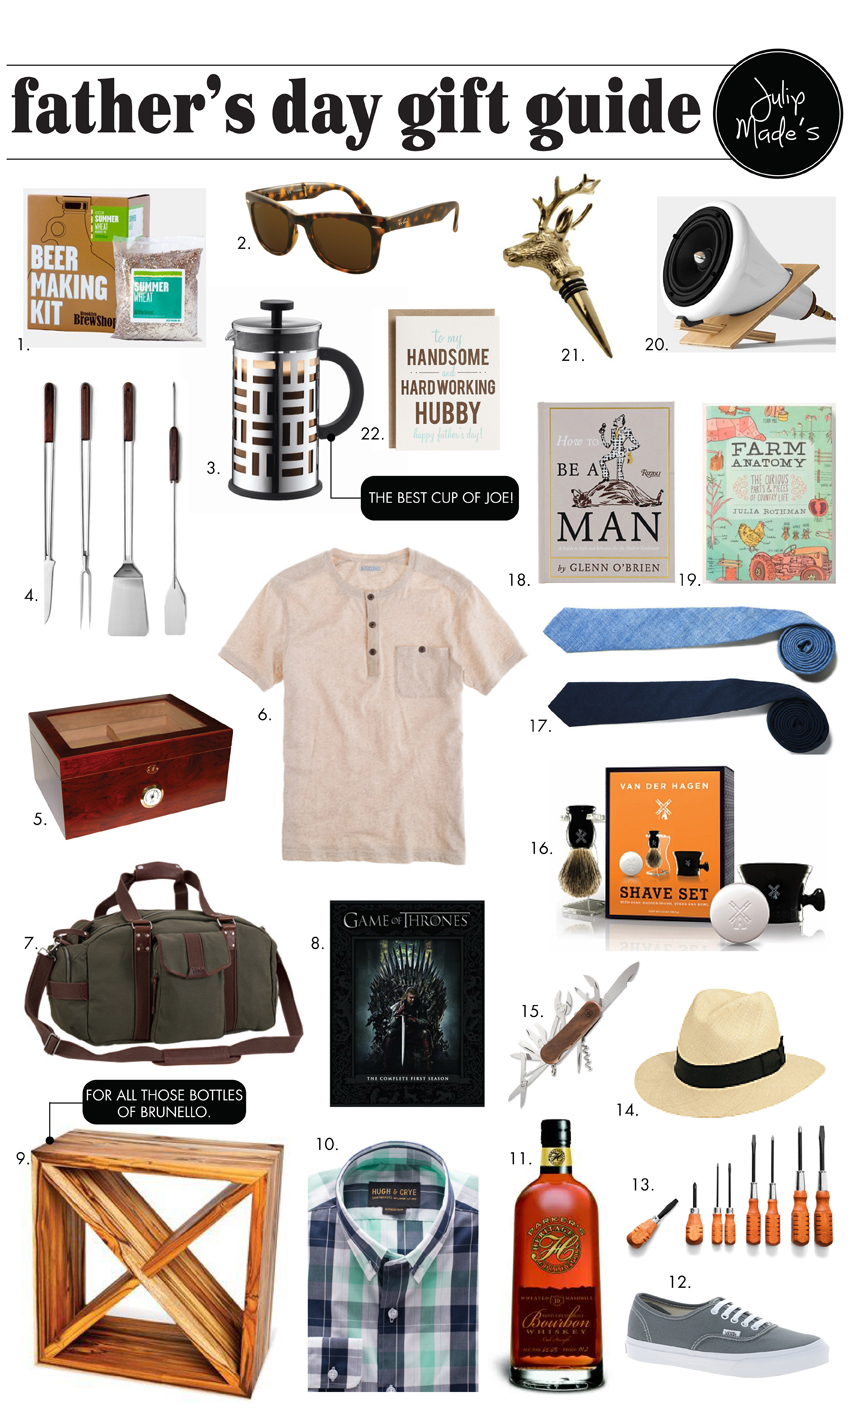 Julip Made Father S Day Gift Guide